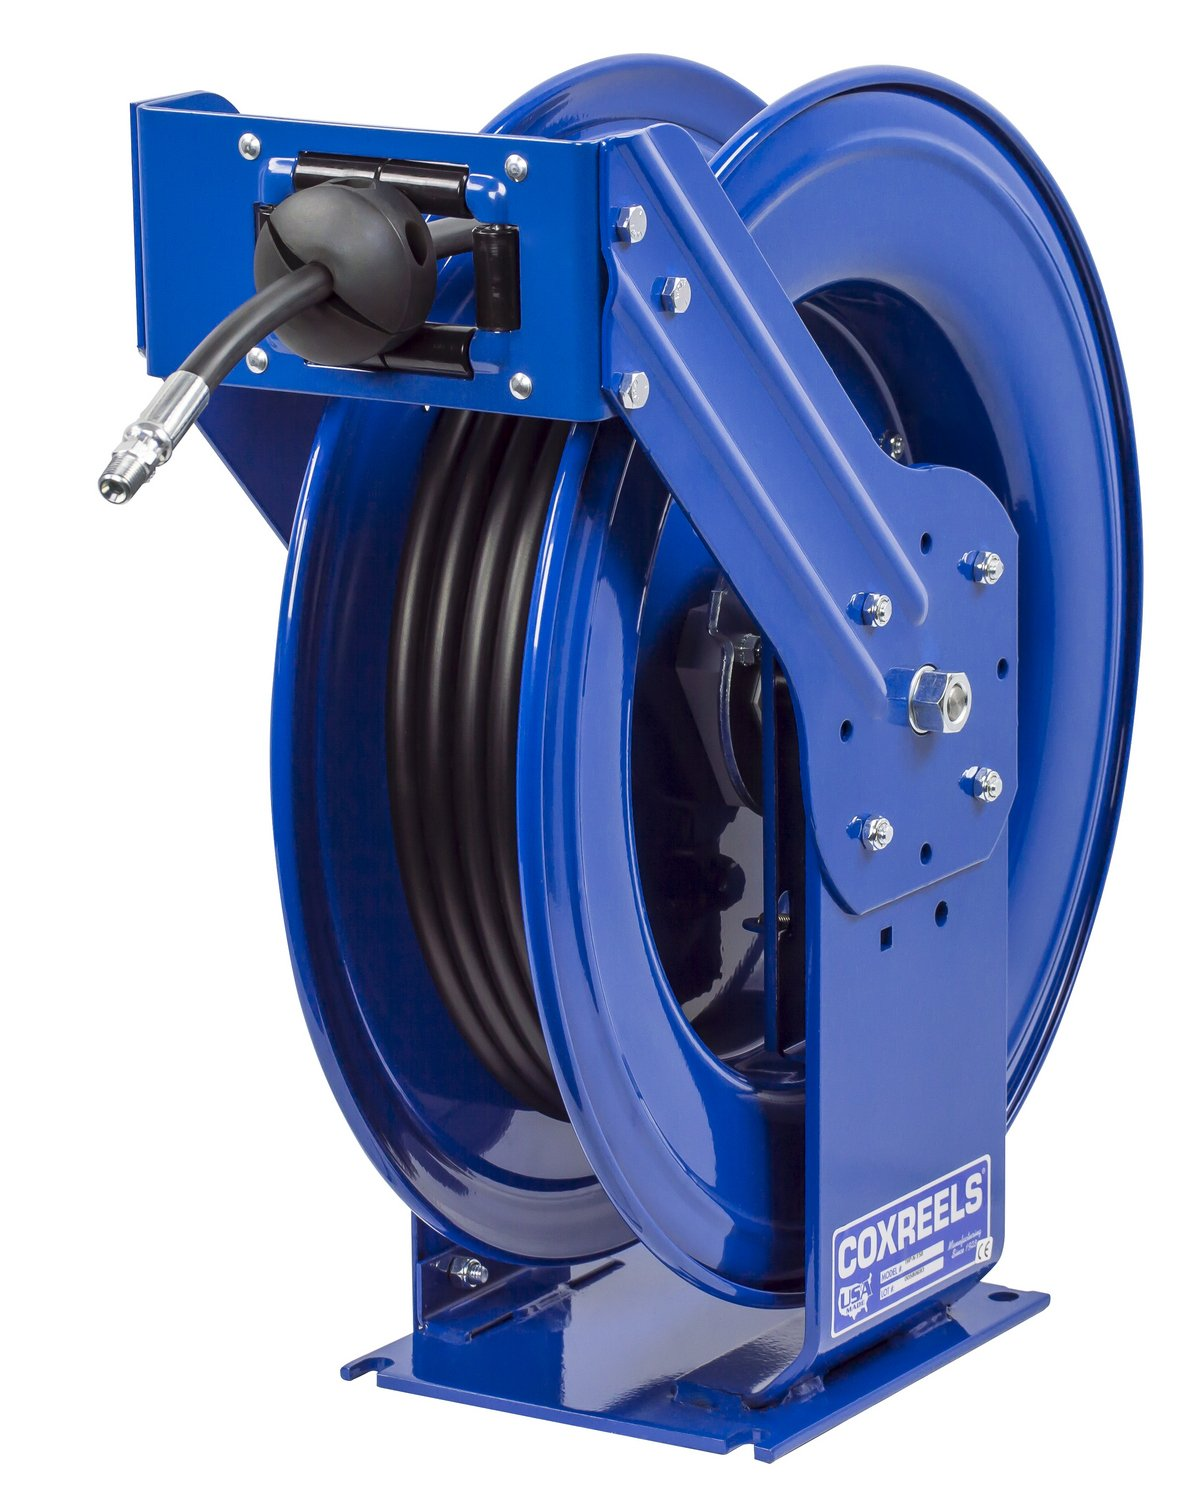 Coxreels THP-N-150 Supreme Duty Spring Rewind Hose Reel for grease/hydraulic oil: 1/4'' I.D., 50' hose, 5000 PSI